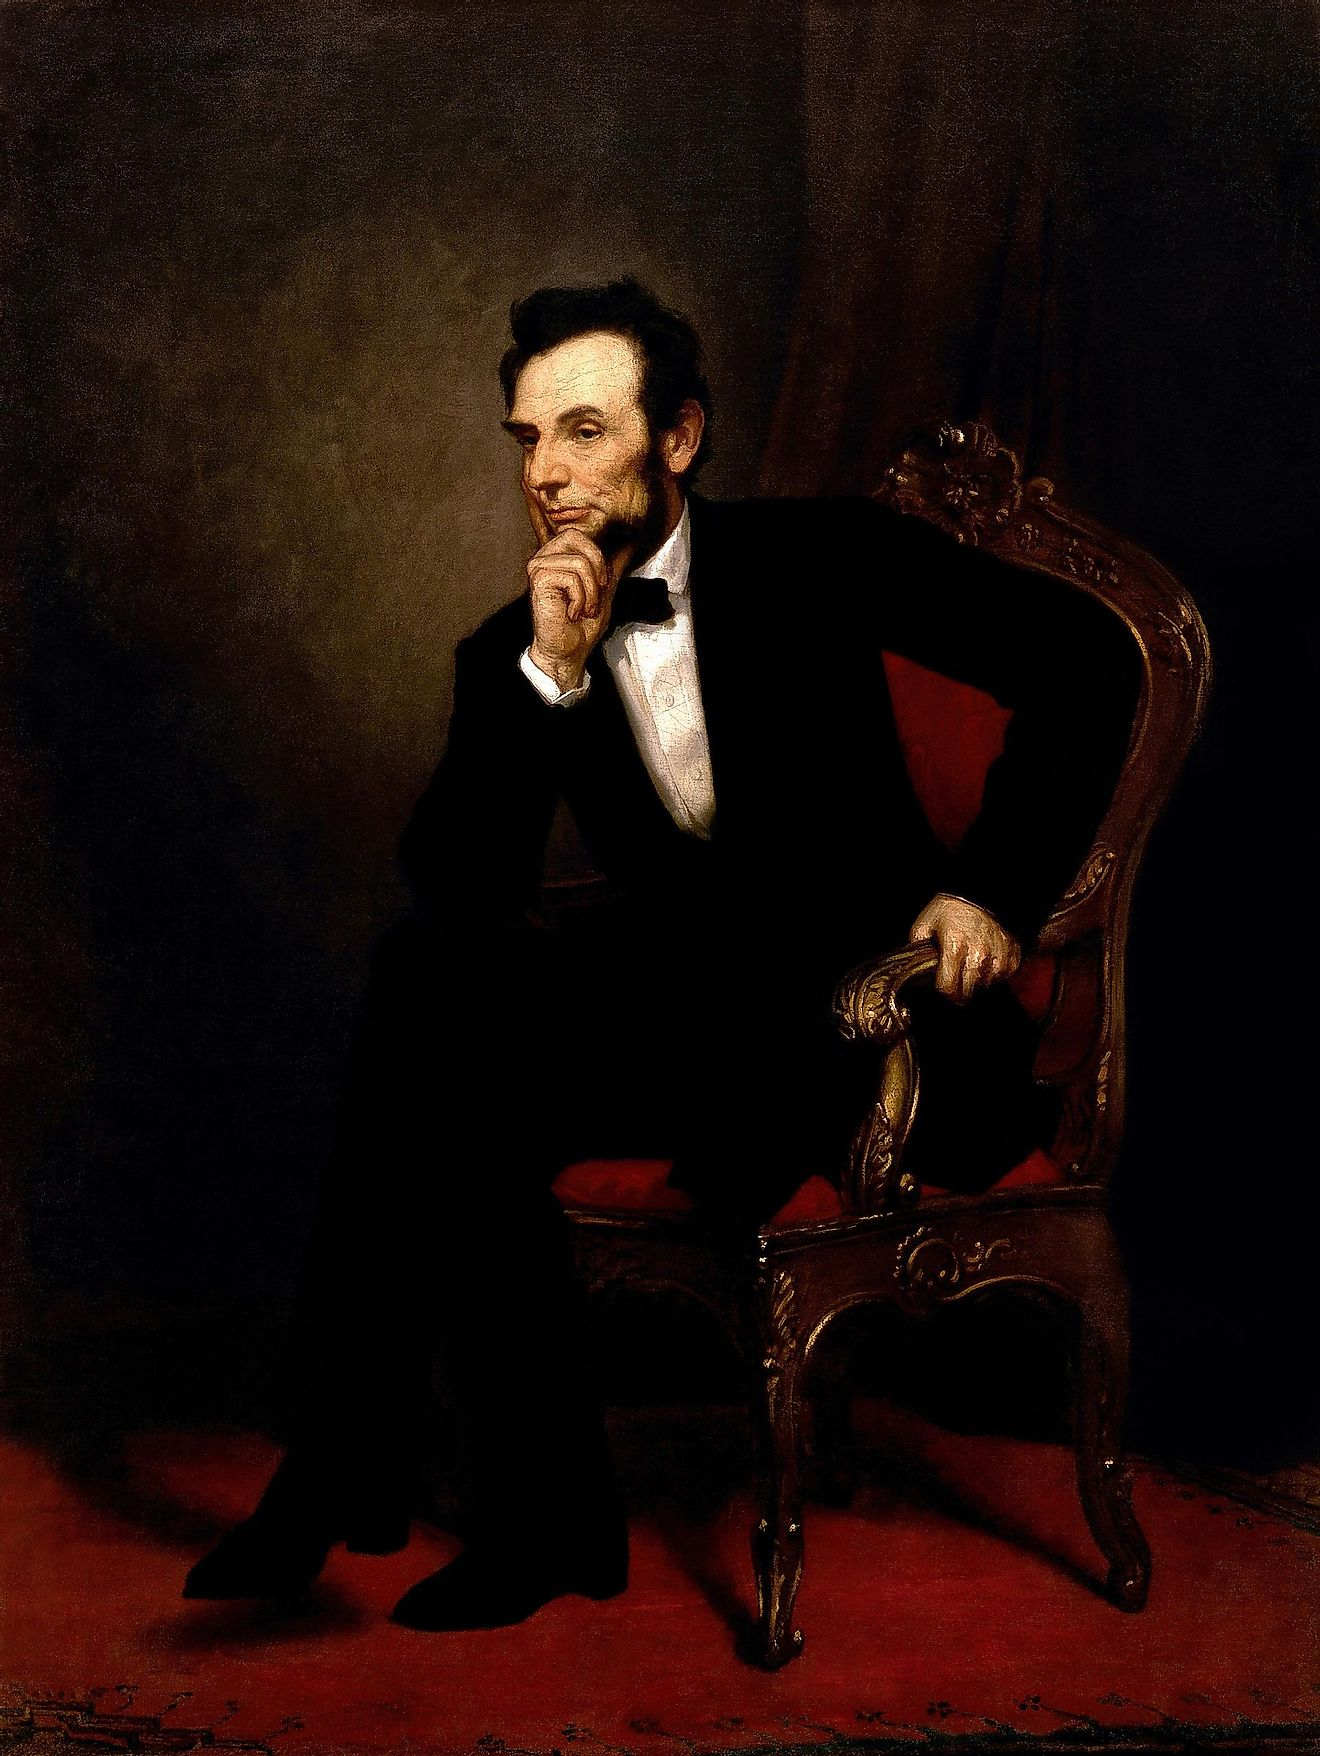 A painting of Abraham Lincoln